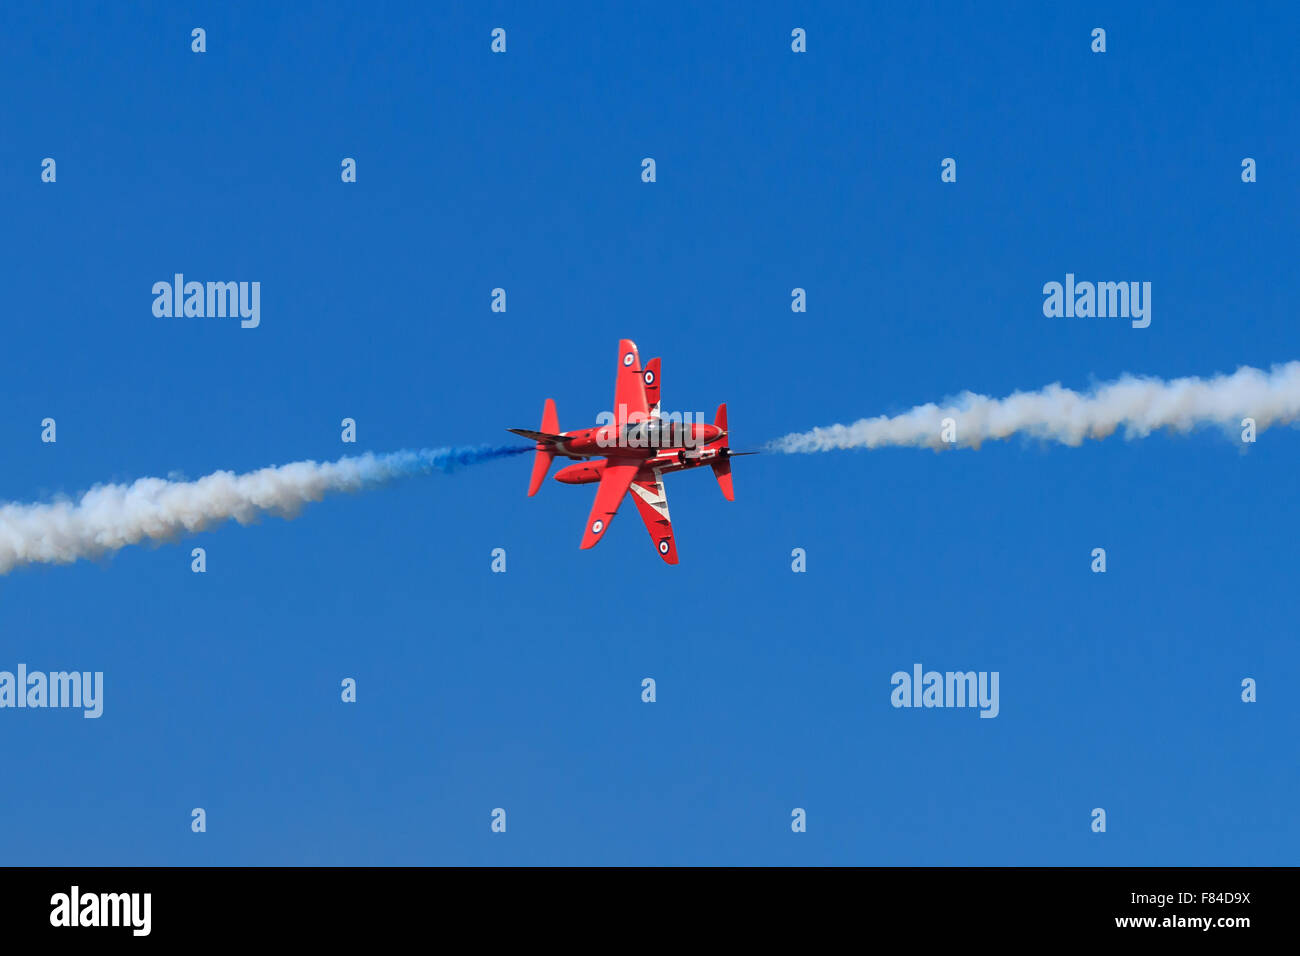 Red Arrows  6 and 7 performing their popular opposition maneuvre at Southport air show 2014. - Stock Image